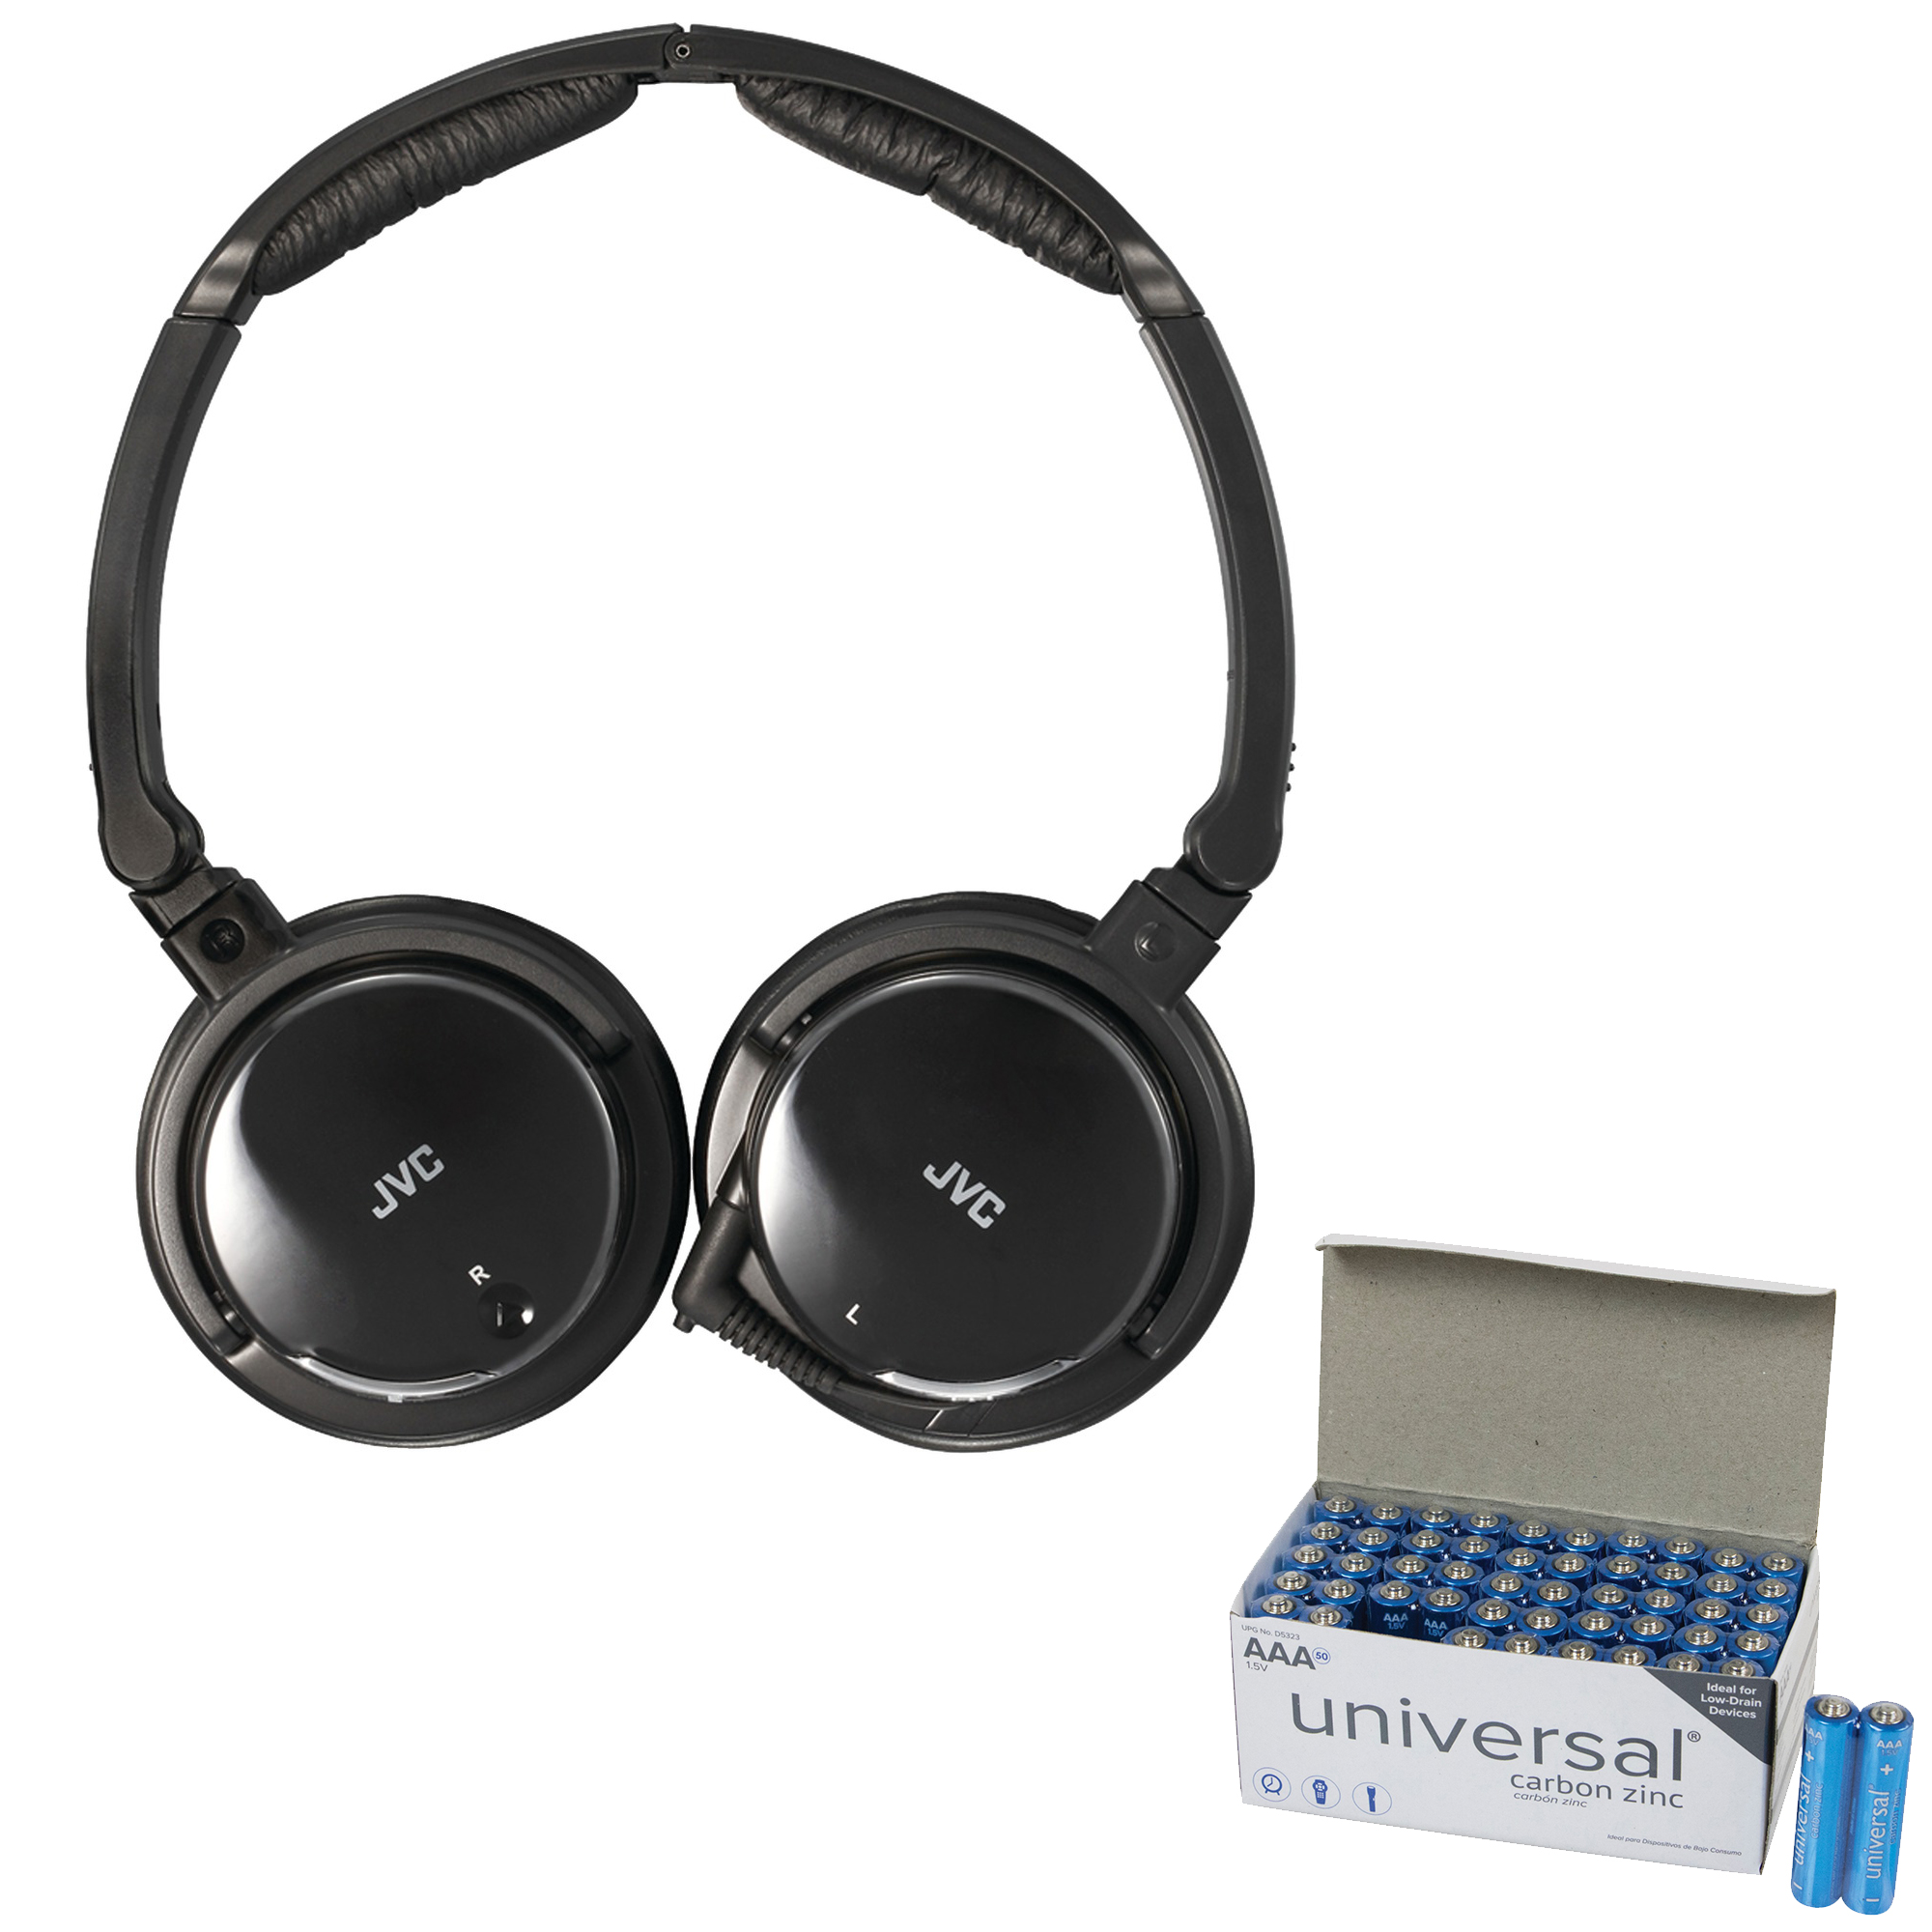 JVC HANC120 Noise-Canceling Headphones With Retractable Cord & UPG AAA 50 Pack